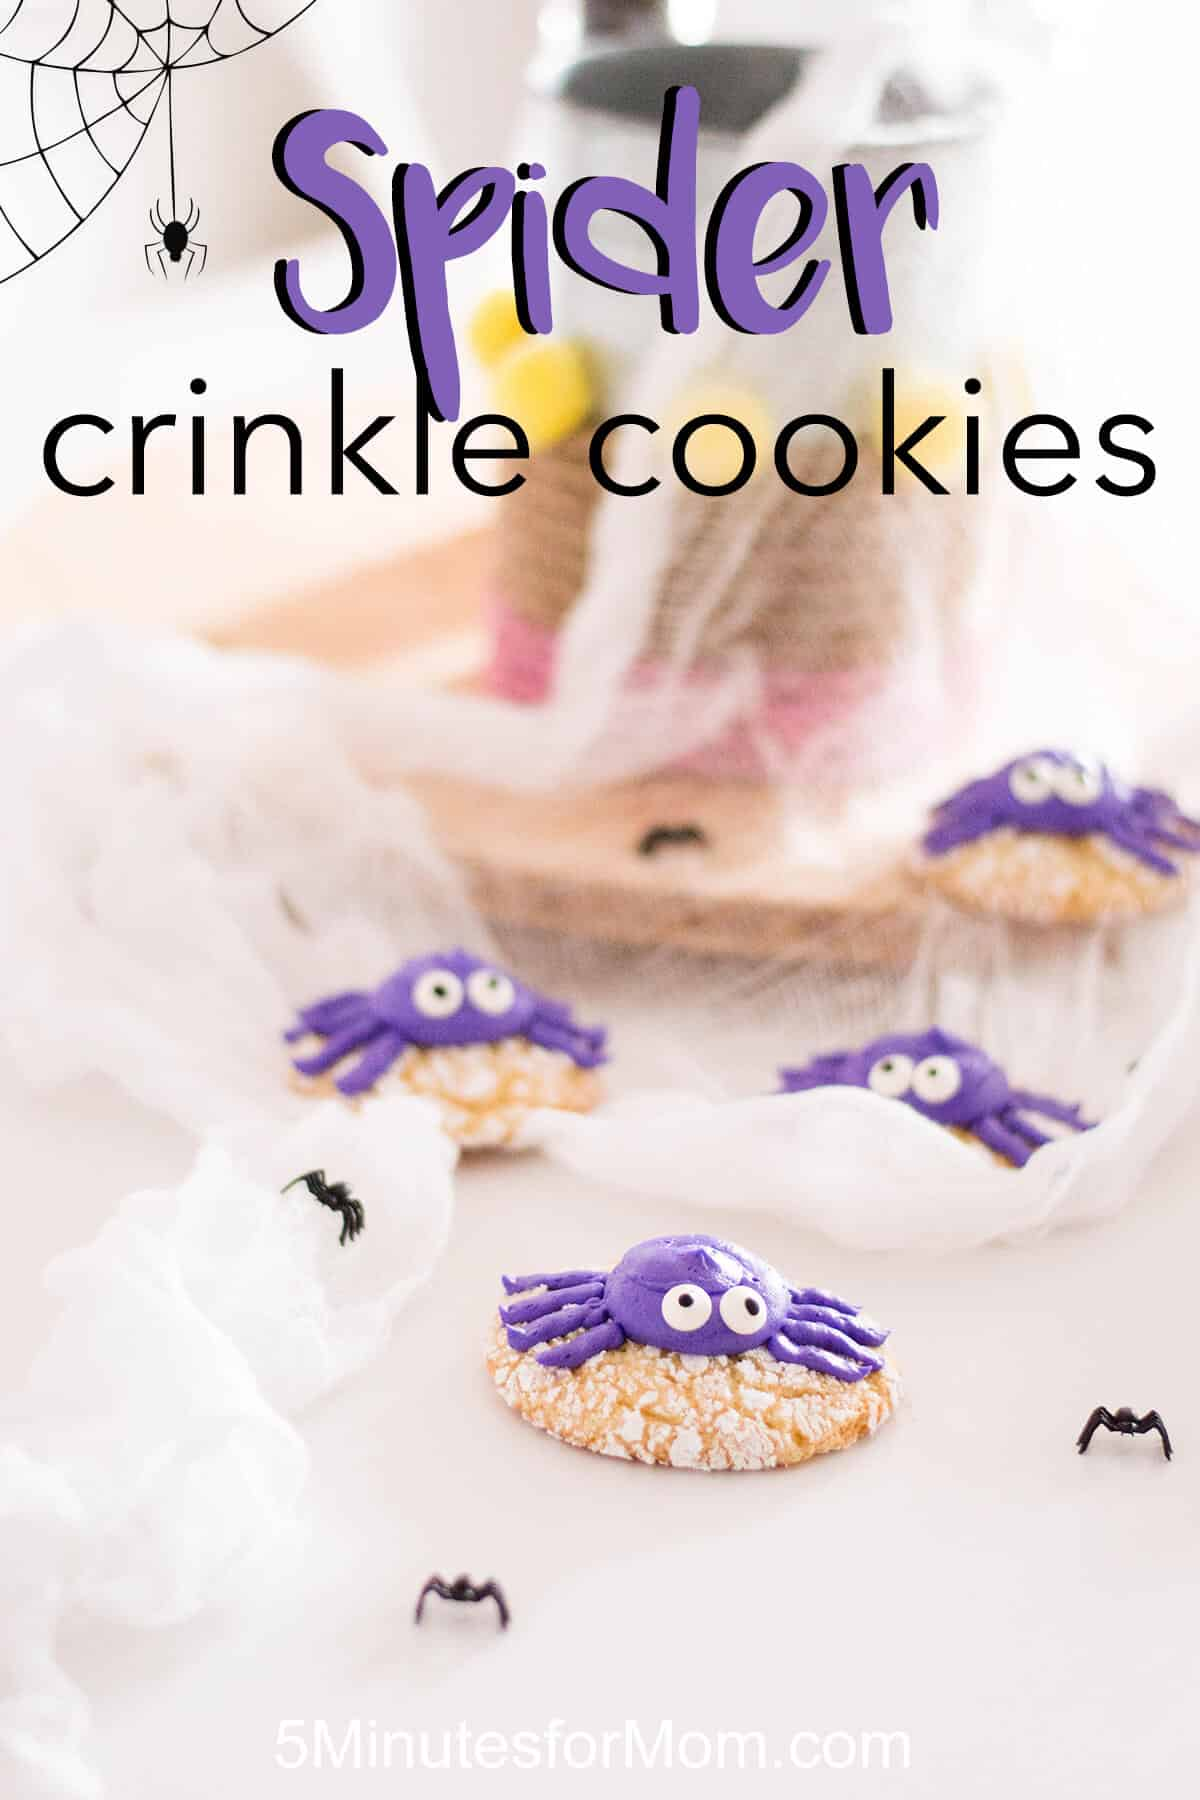 Spider Crinkle Cookies Recipe - Halloween Recipe